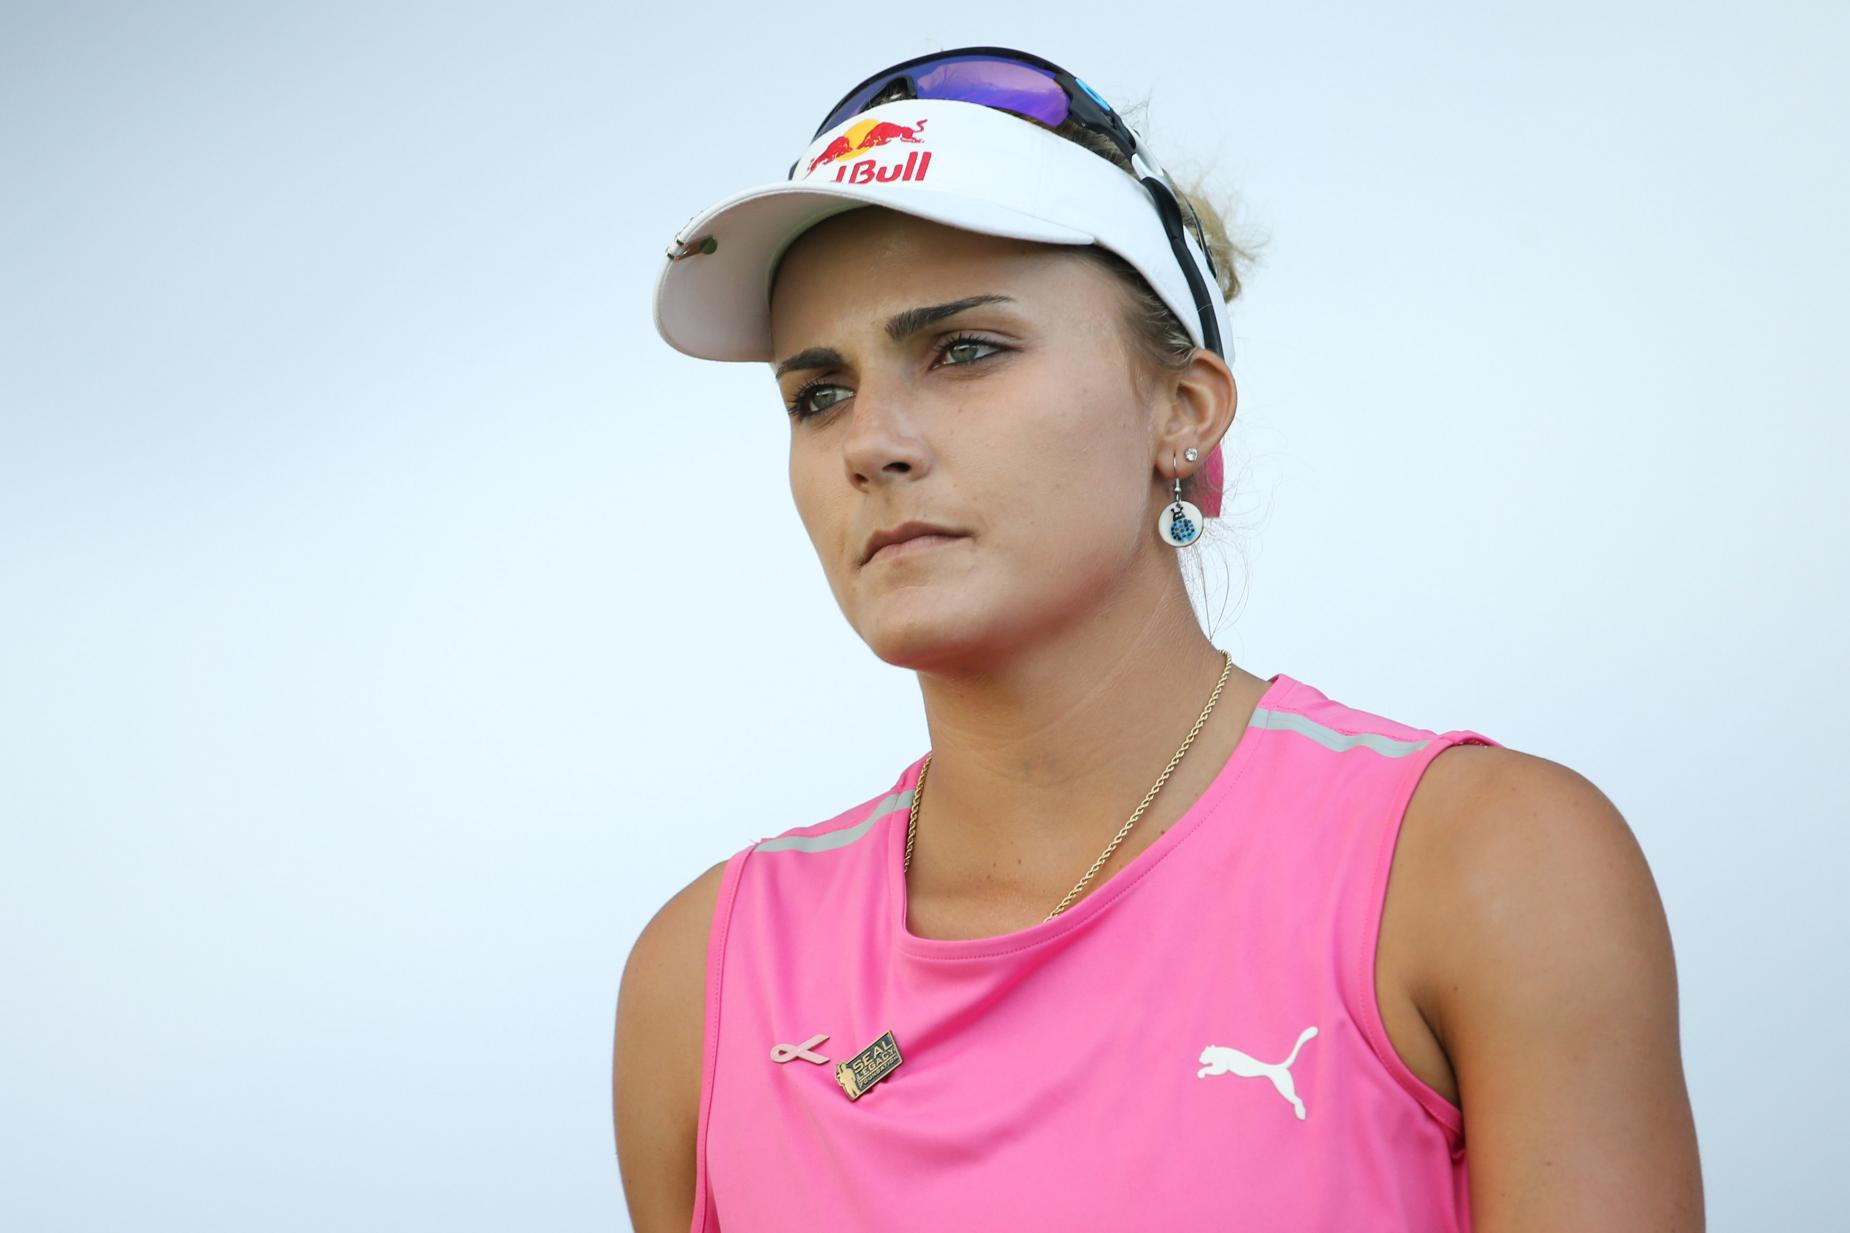 lexi-thompson-determined-tight-shot-2017.jpg